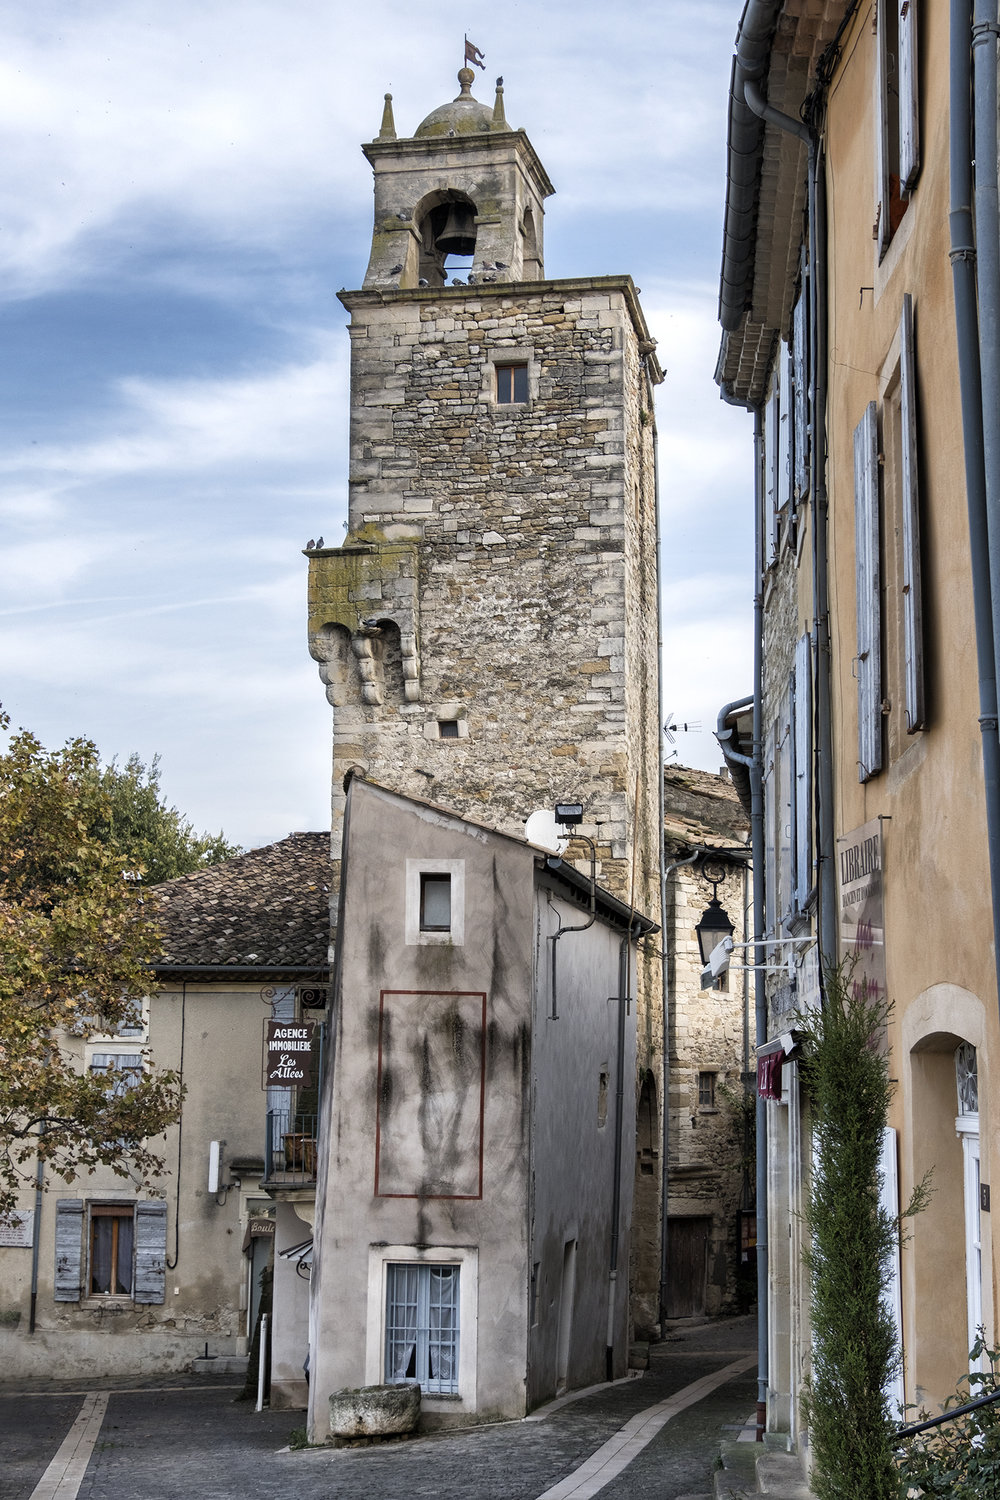 Grignan, France, October Afternoon